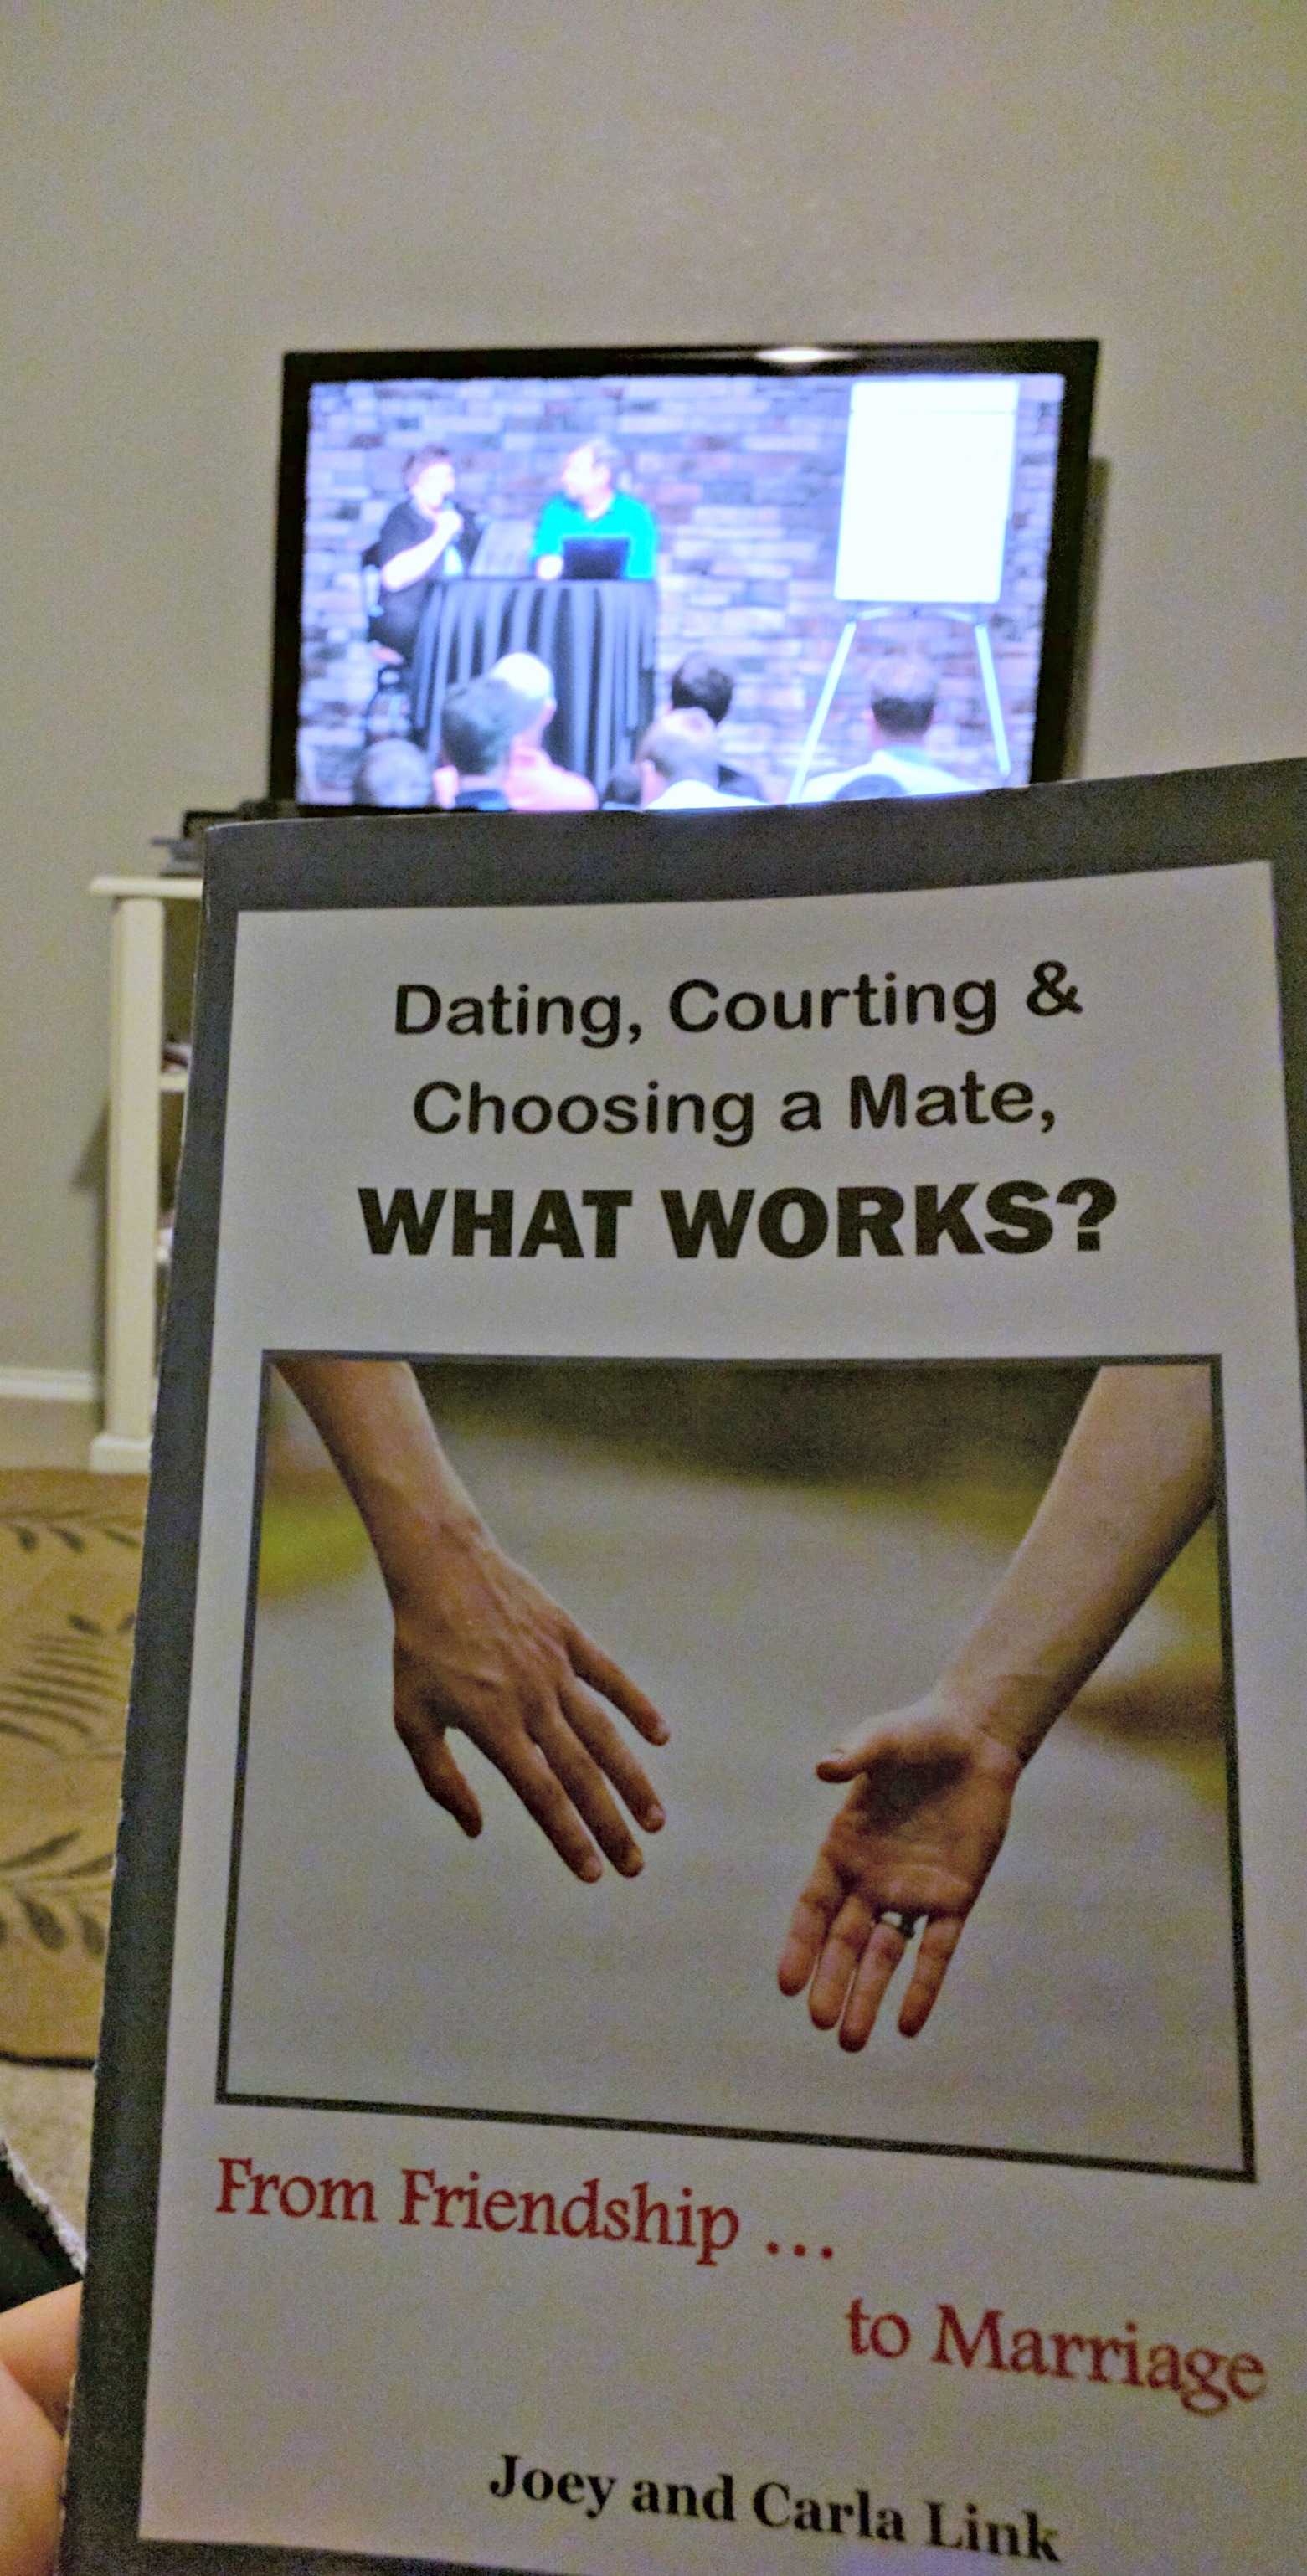 Dating, Courting, and Choosing a Mate, What Works? DVD lecture set with workbook and DVD